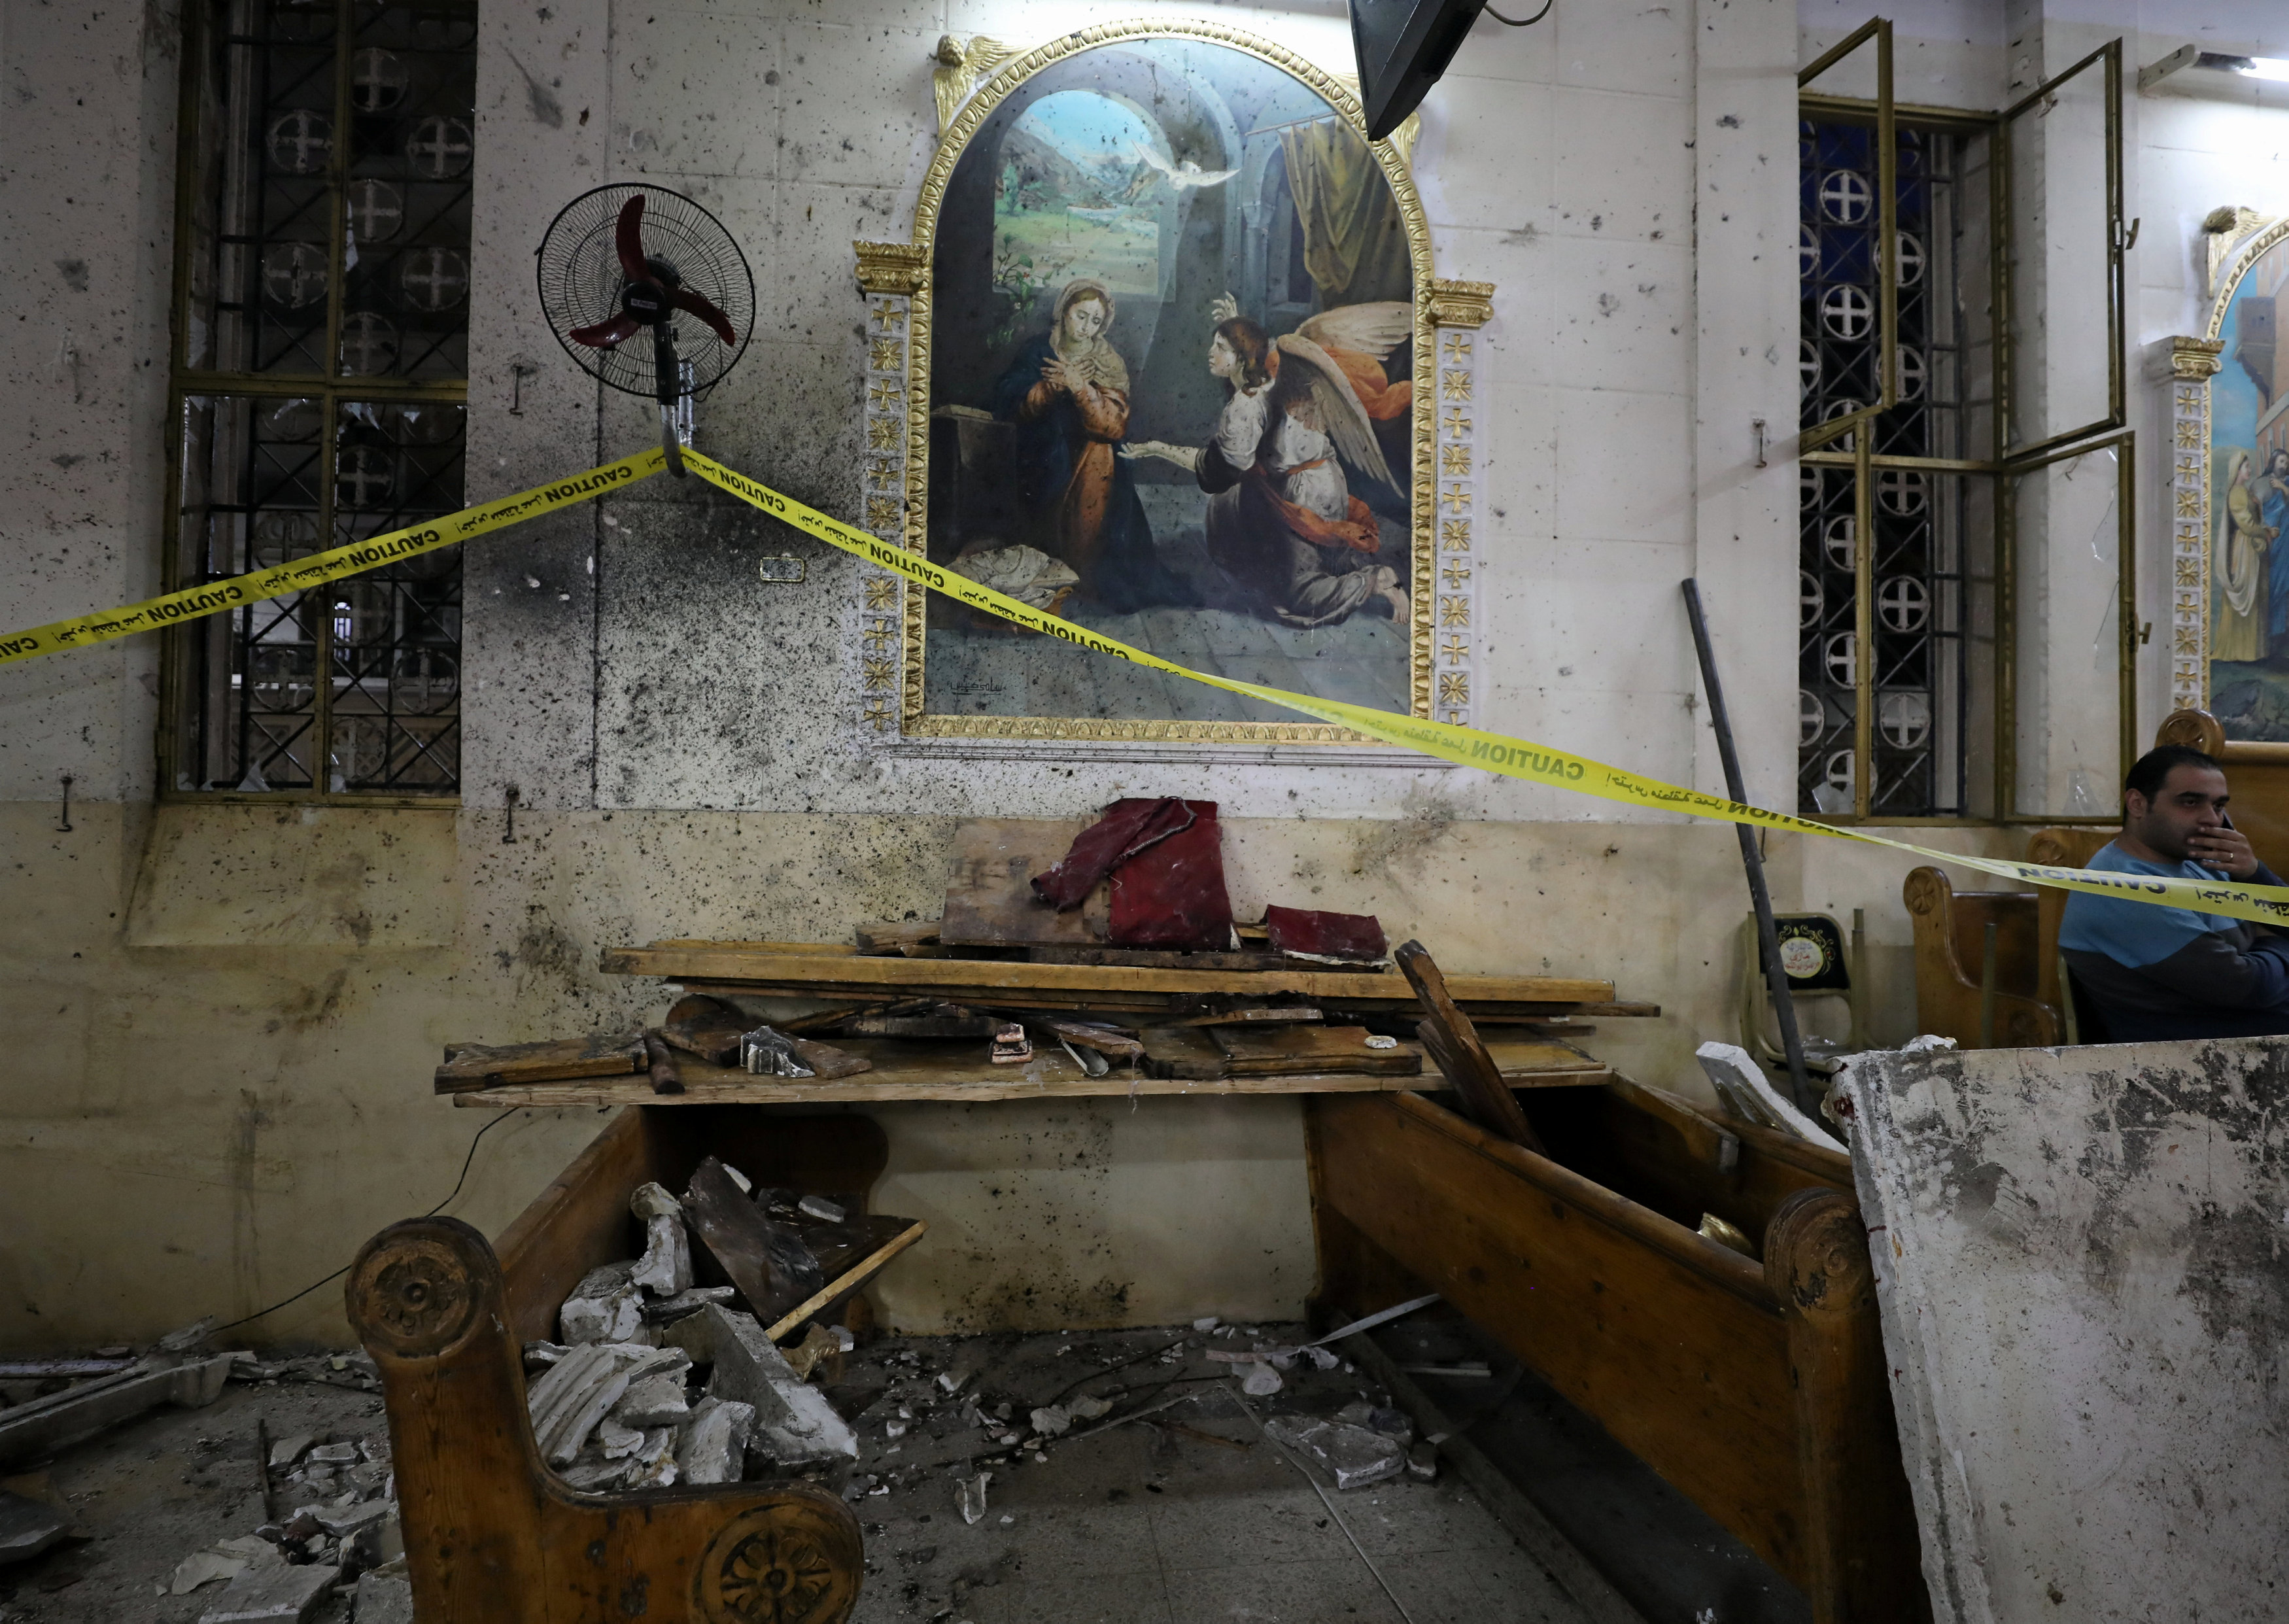 The aftermath of an explosion that took place at a Coptic church on Sunday in Tanta, Egypt on April 9, 2017. (REUTERS/Mohamed Abd El Ghany)